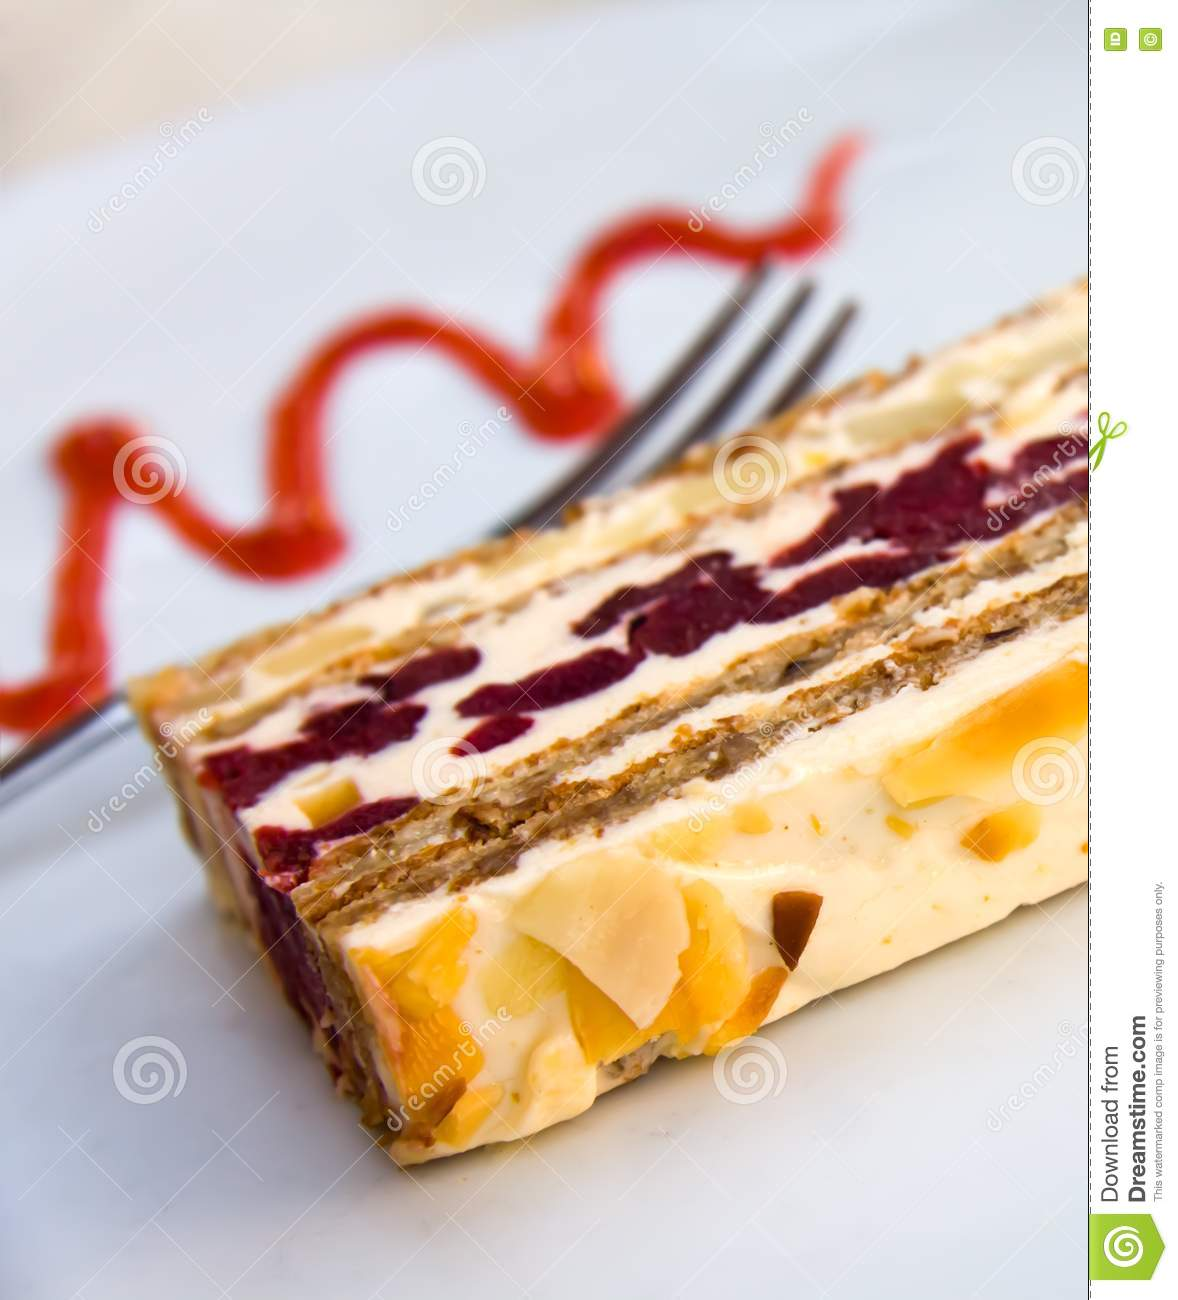 Pie Of Cherry With Almonds Royalty Free Stock Images - Image: 16198699